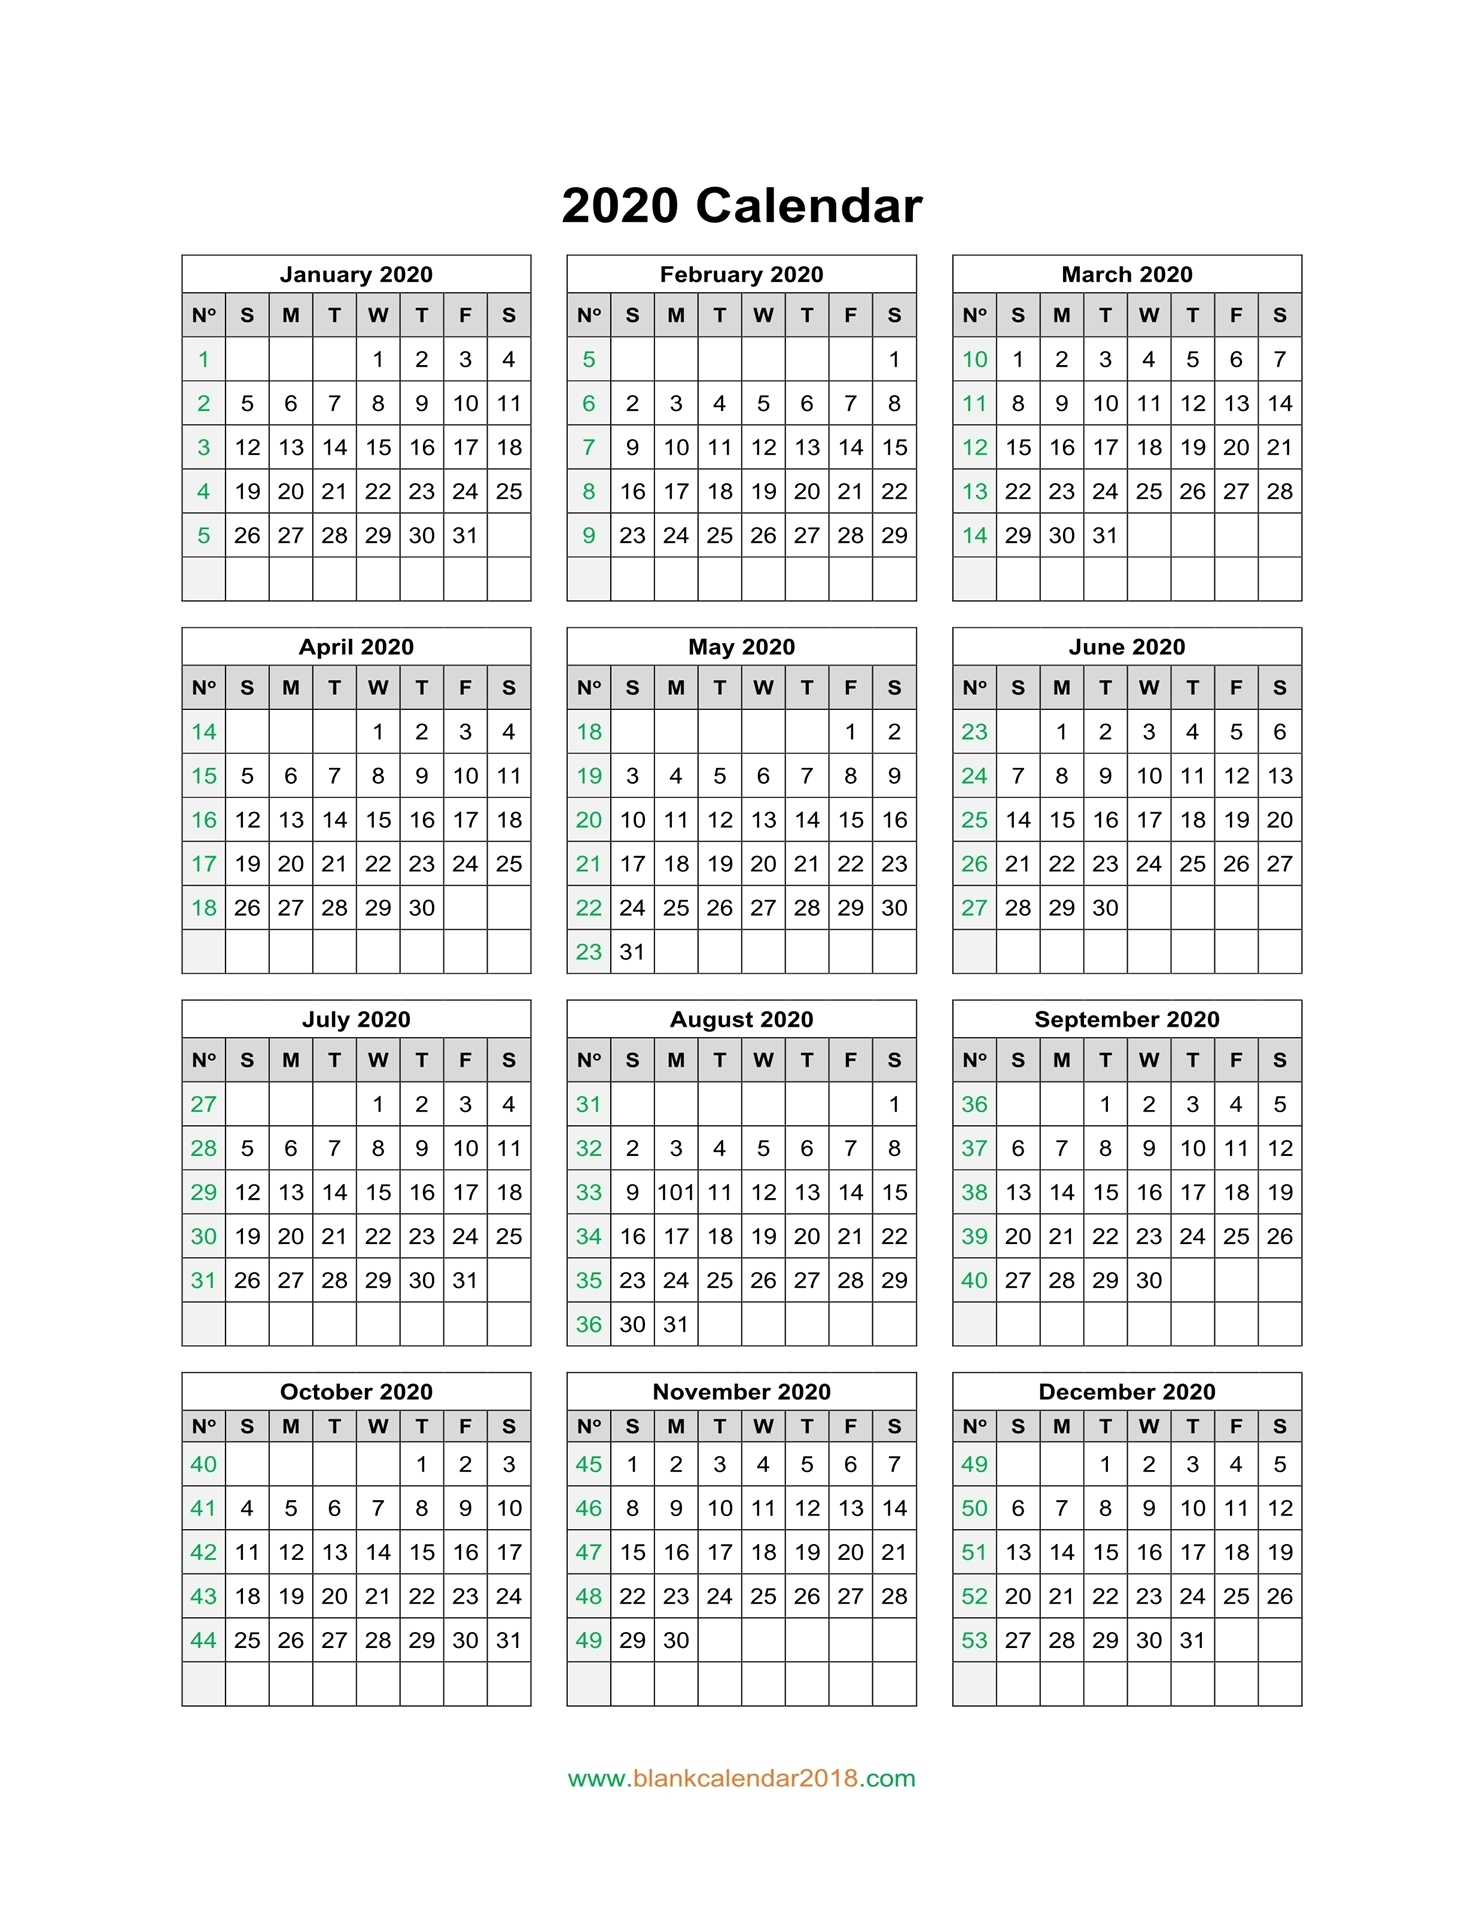 Blank Calendar 2020 with 2020 Free Year Printable Calendars Without Downloading